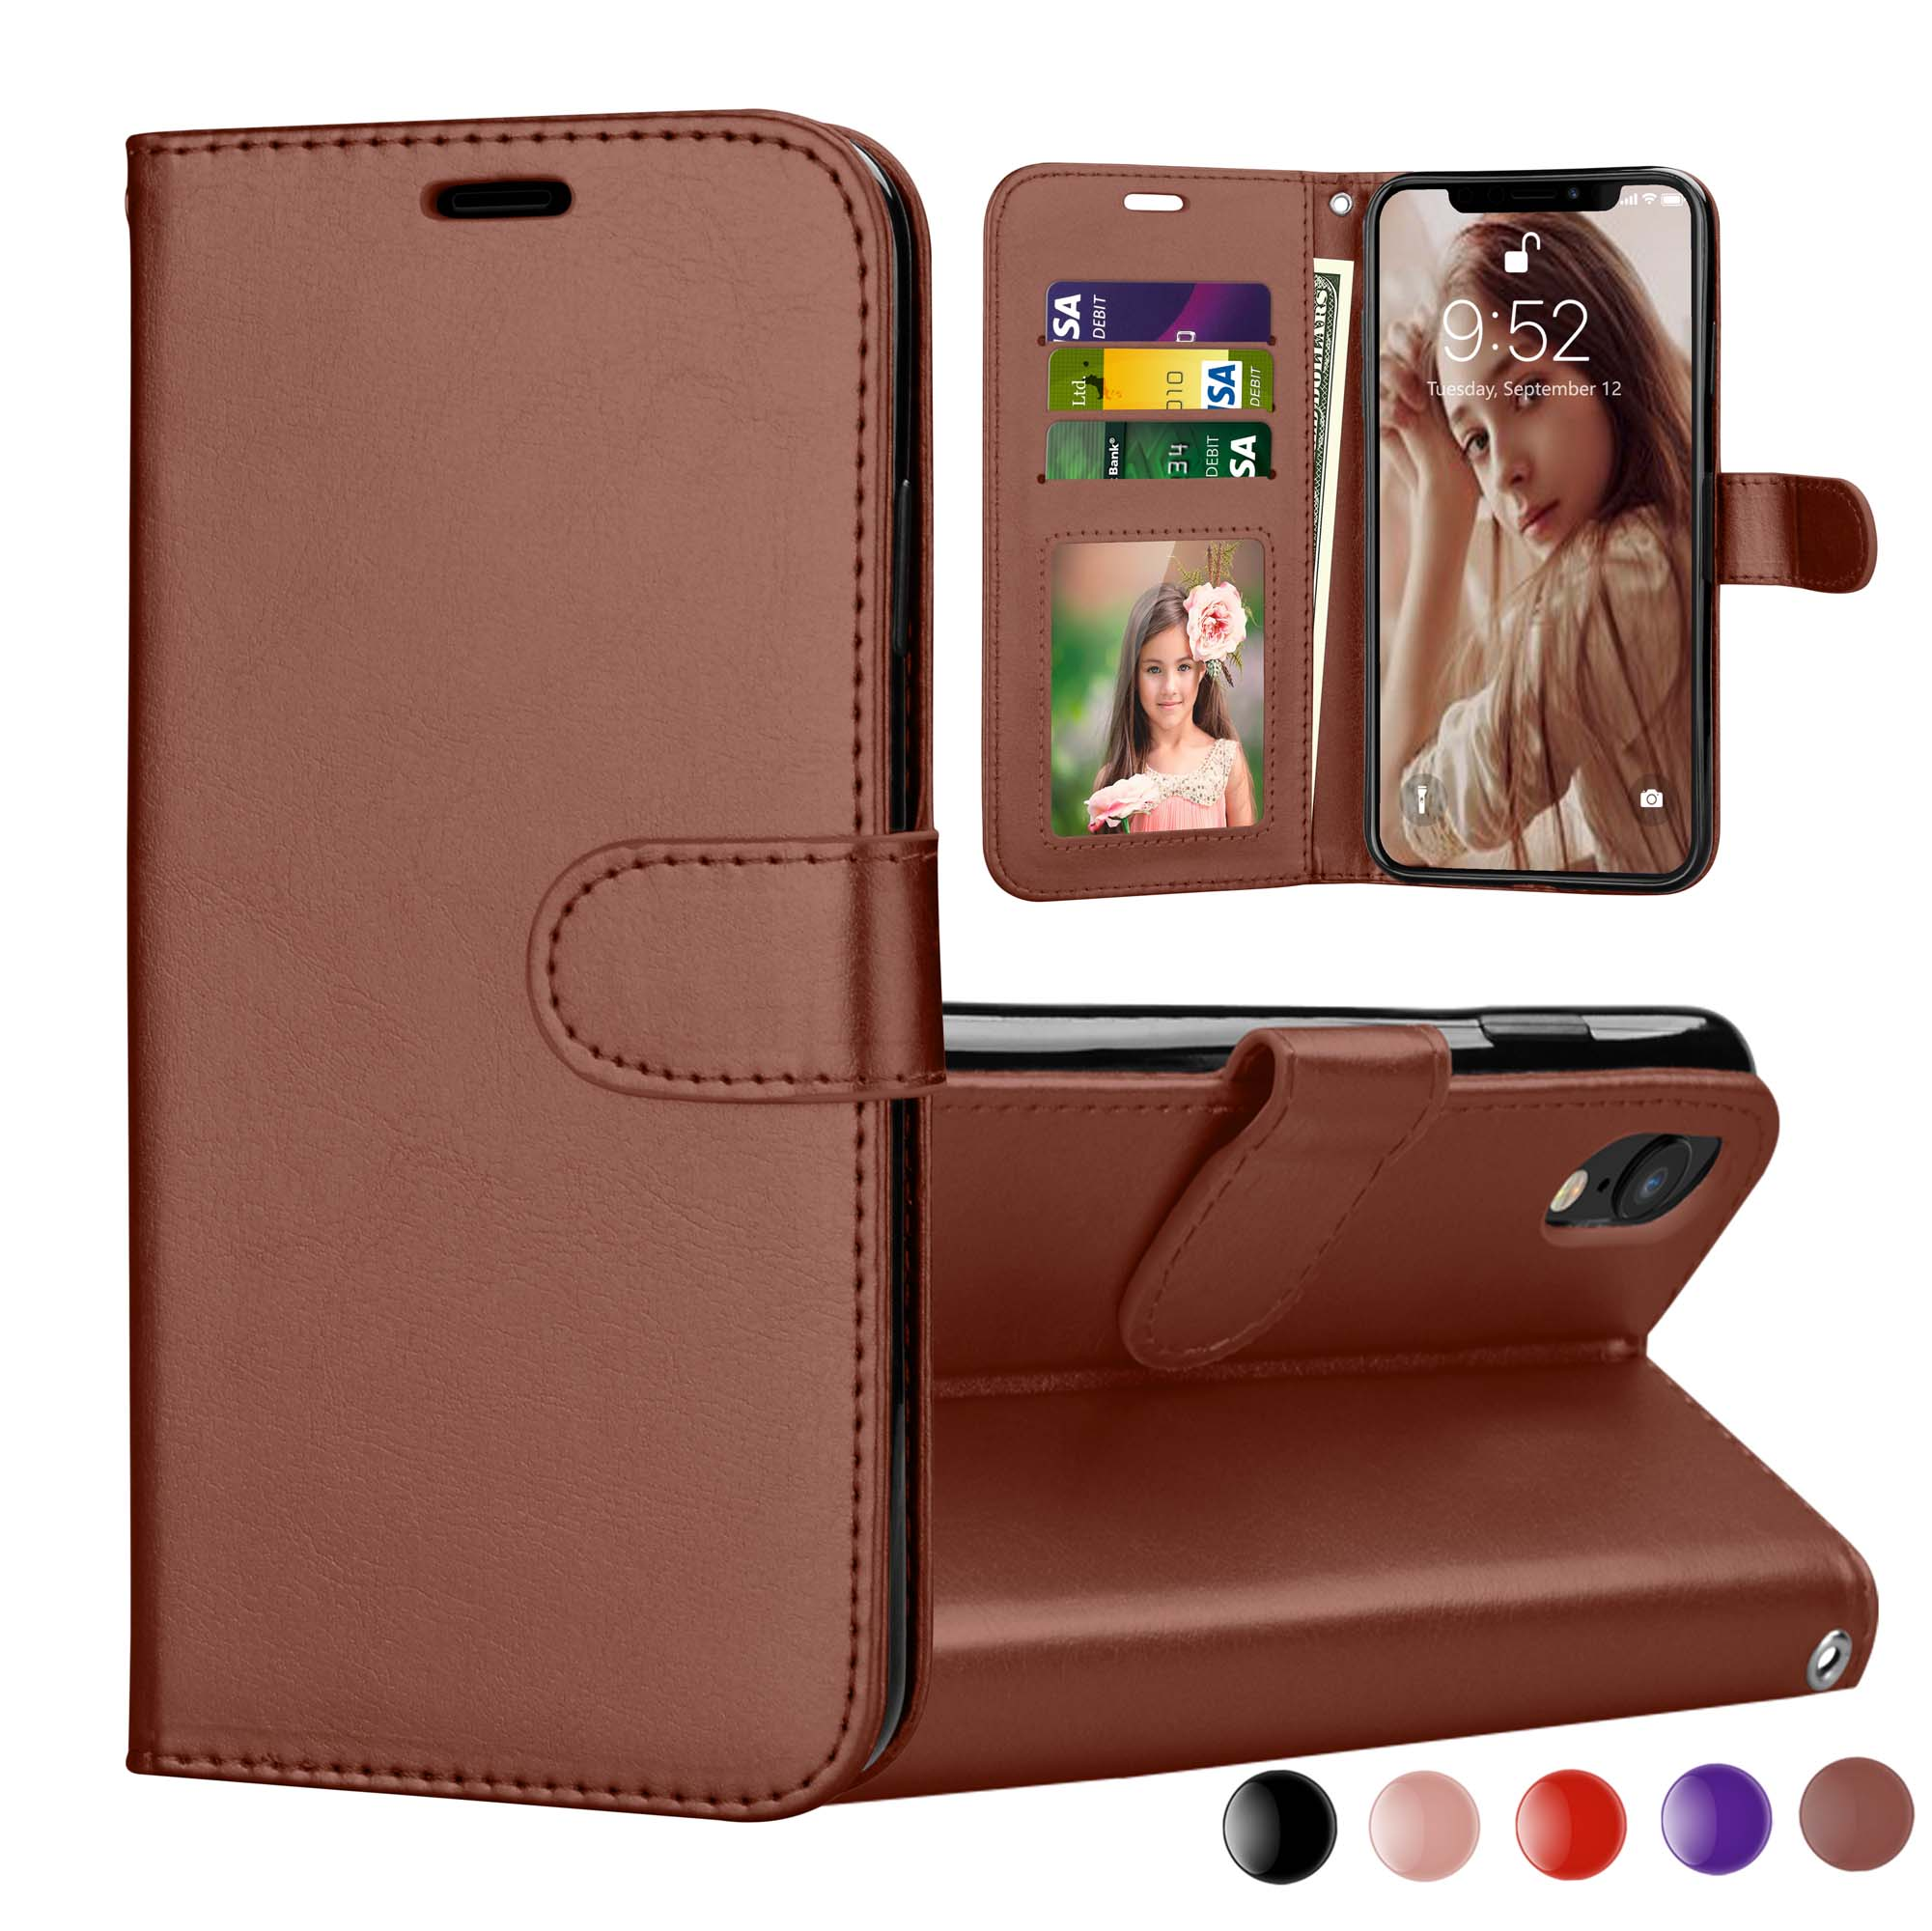 5872dd40617 iPhone XR Case, 2018 iPhone XR Wallet Cover, iPhone XR PU Leather Cases,  Njjex [Wrist Strap] Flip Folio [Kickstand ] PU leather wallet case with 3  ID&Credit ...